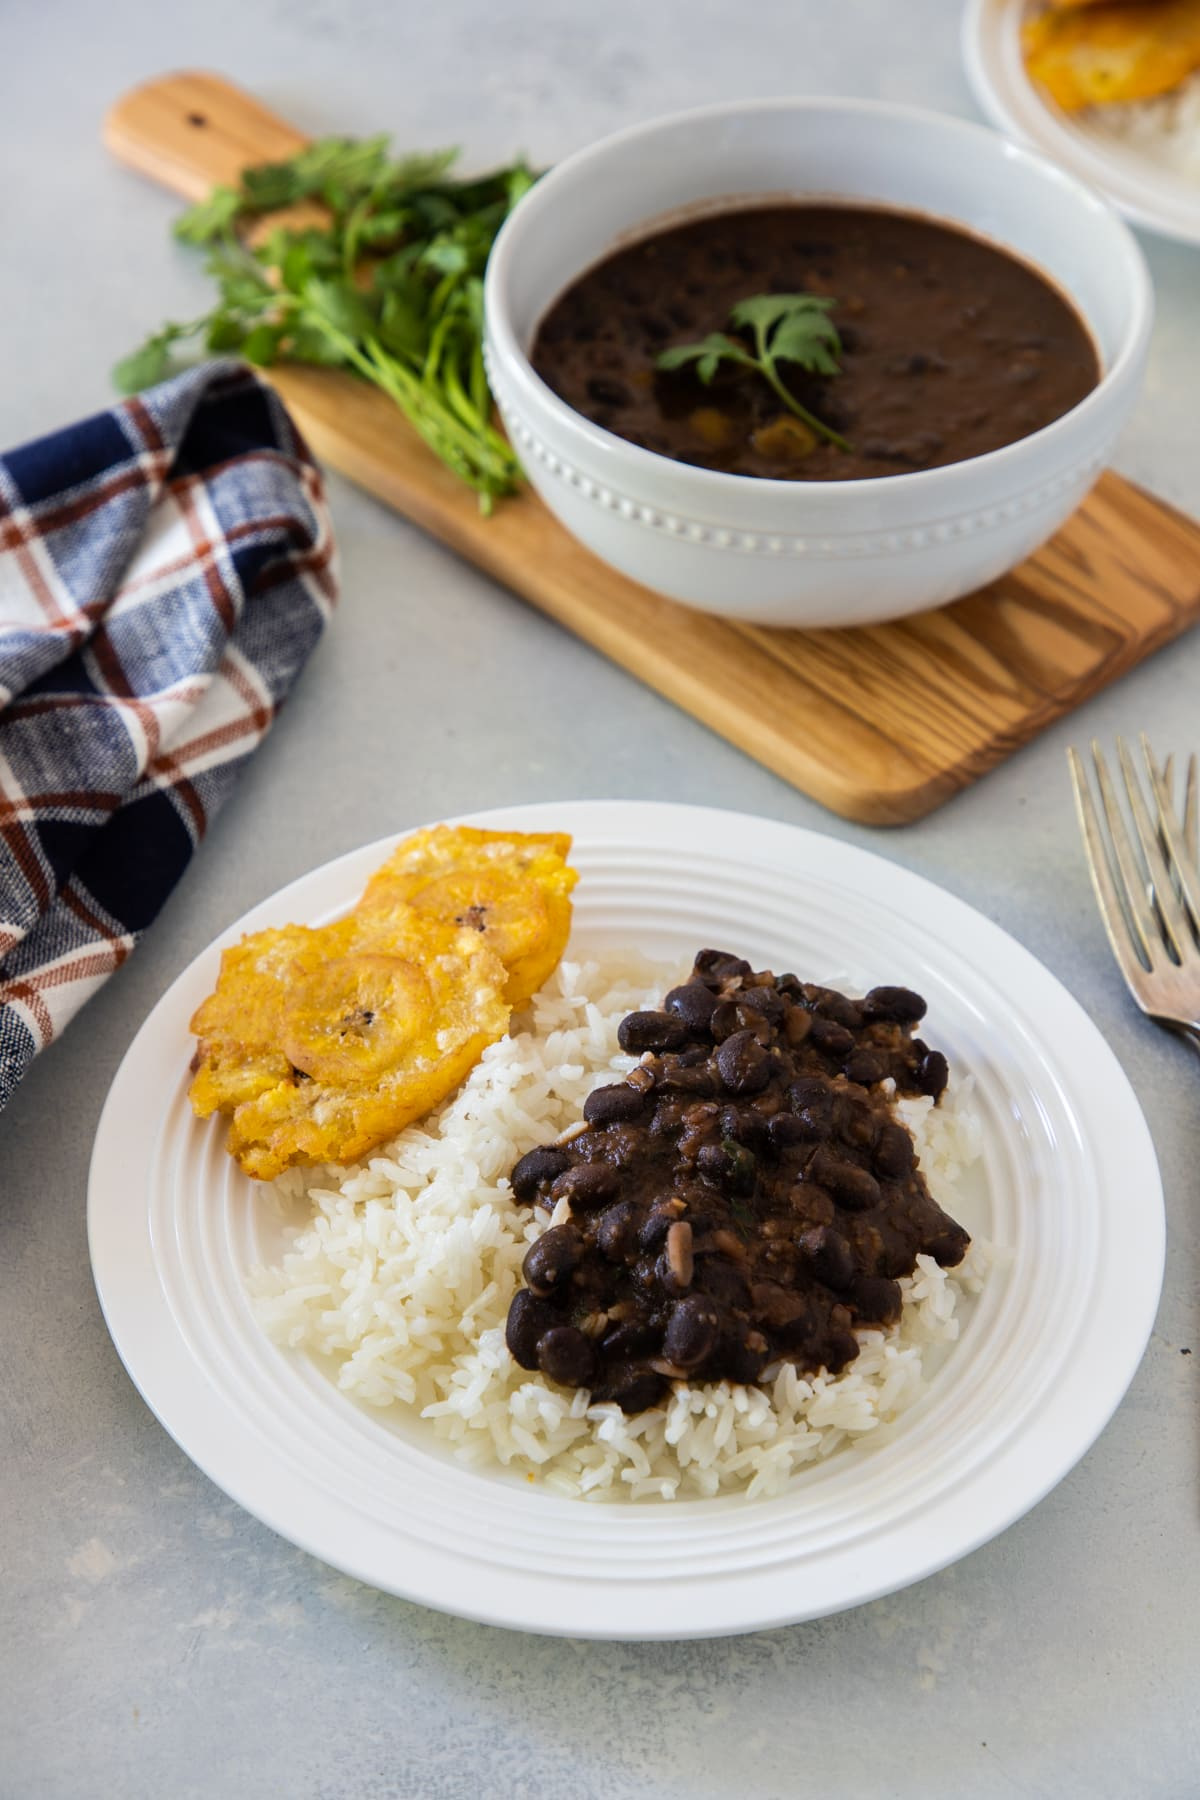 Cozy Fall Meals: Dominican Black Bean Stew from My Dominican Kitchen